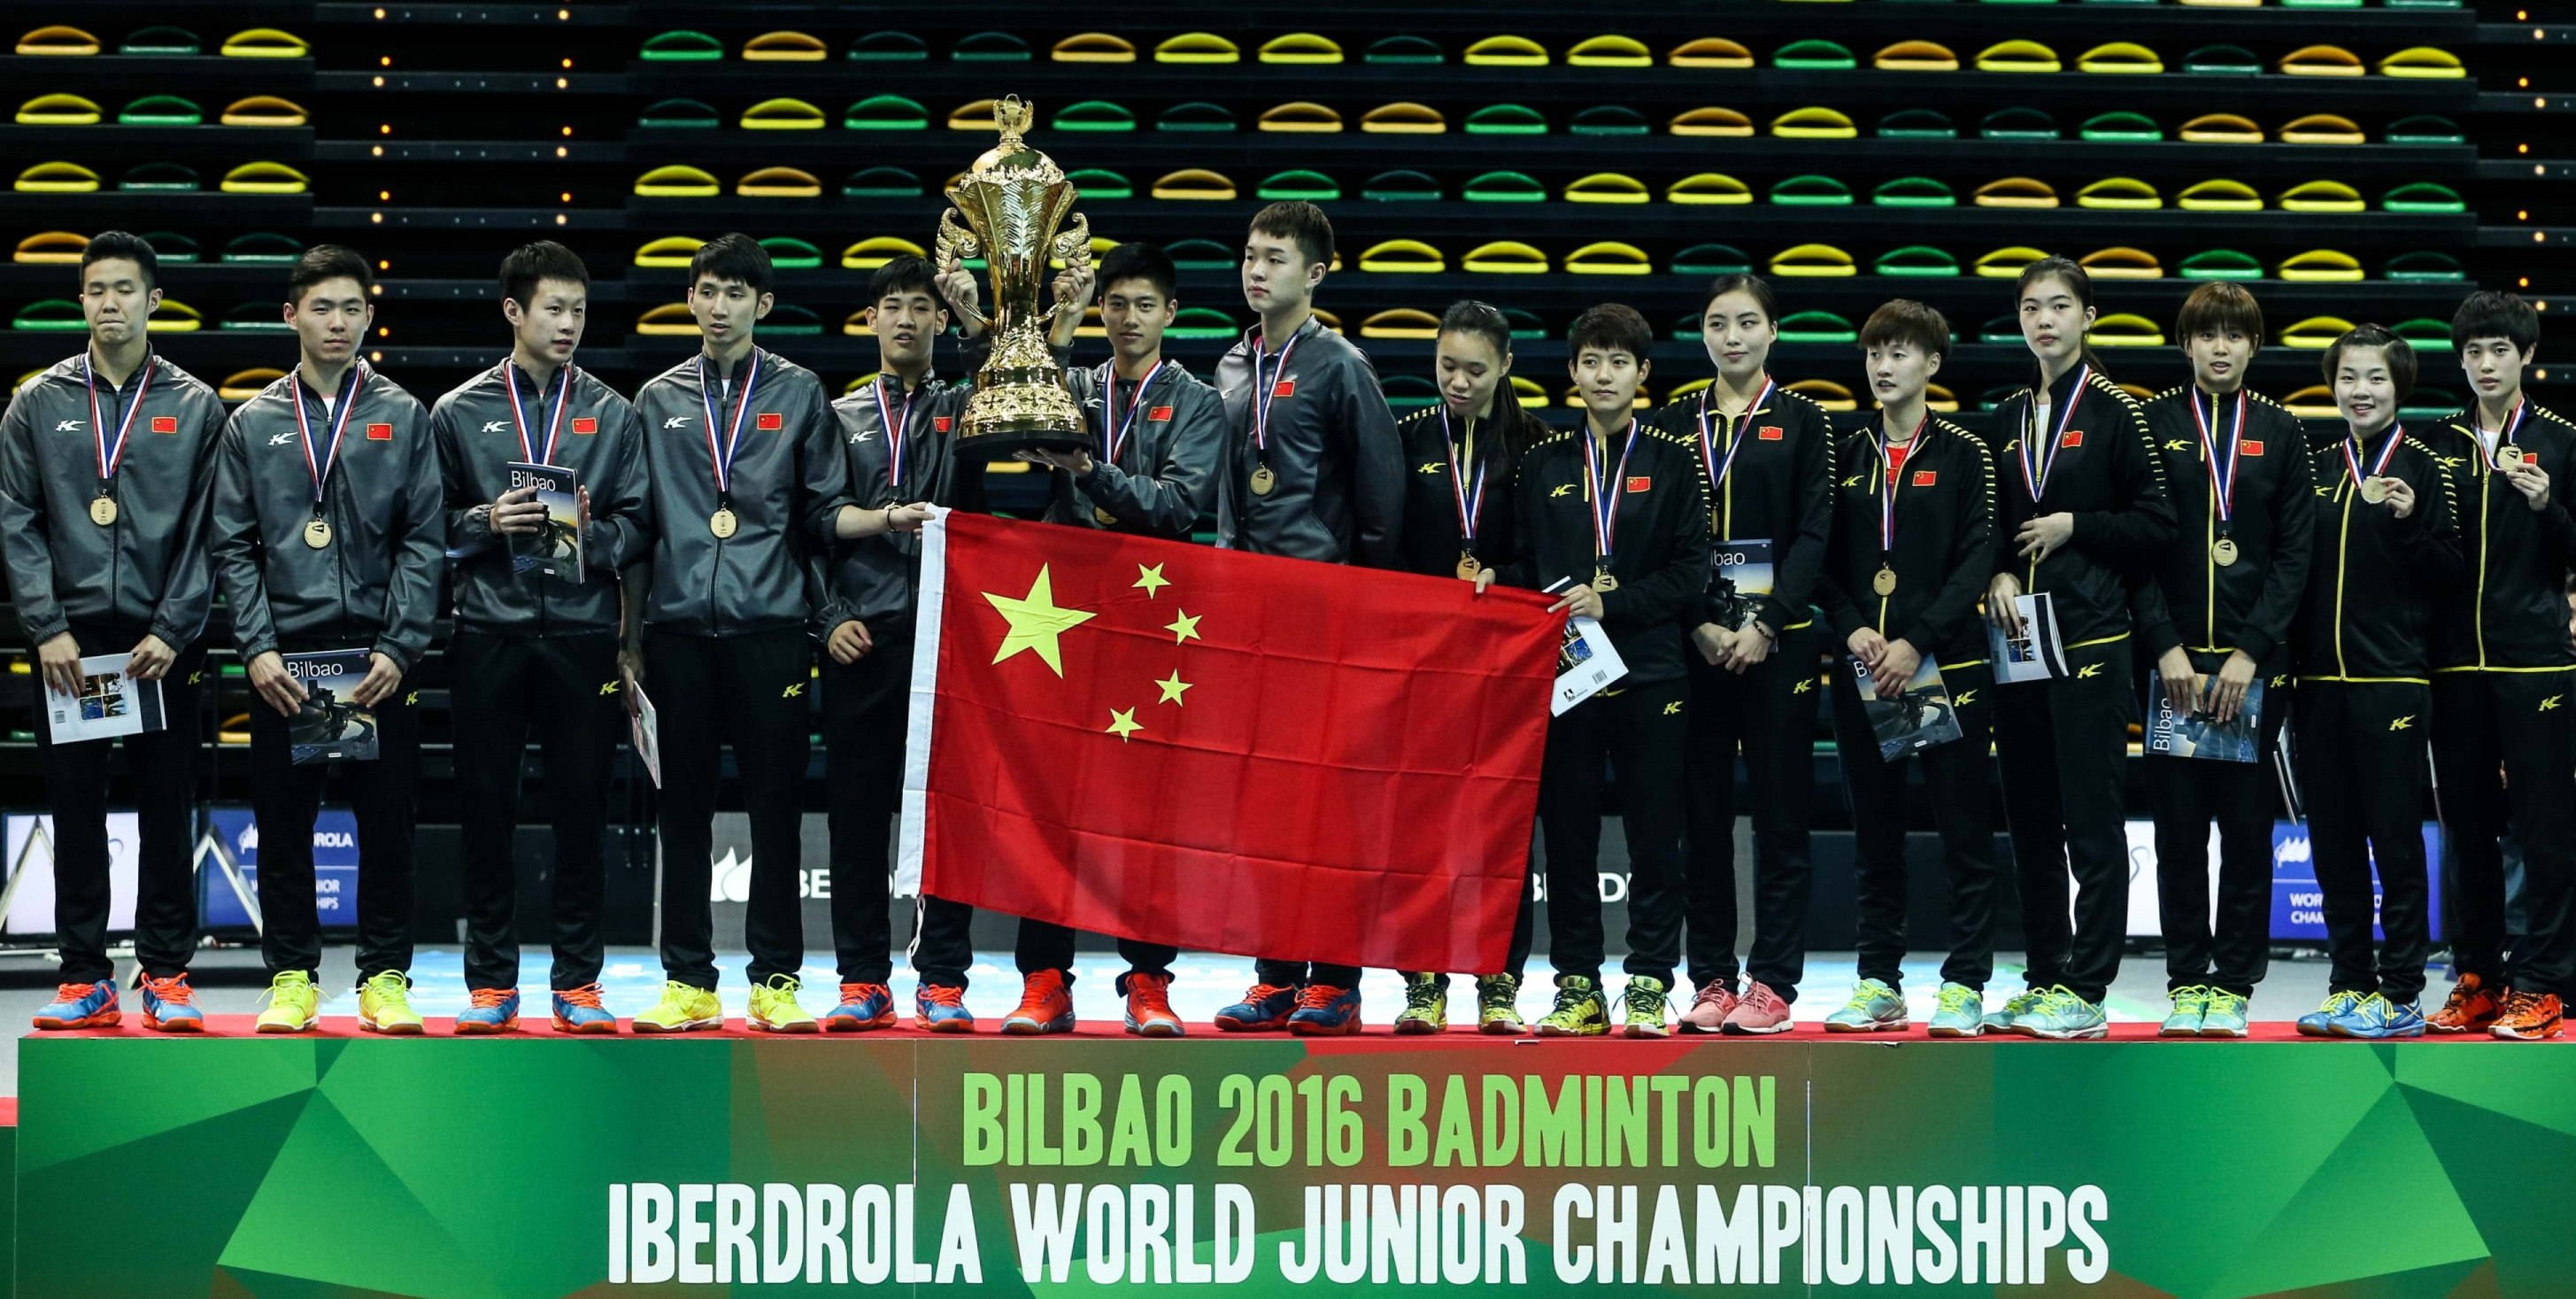 Chen Yufei strikes back against 2015 champion Goh Jin Wei to seal a clean sheet victory for China over Malaysia in Bilbao, Spain. By Wilson Chew. Photos: Shi Tang […]